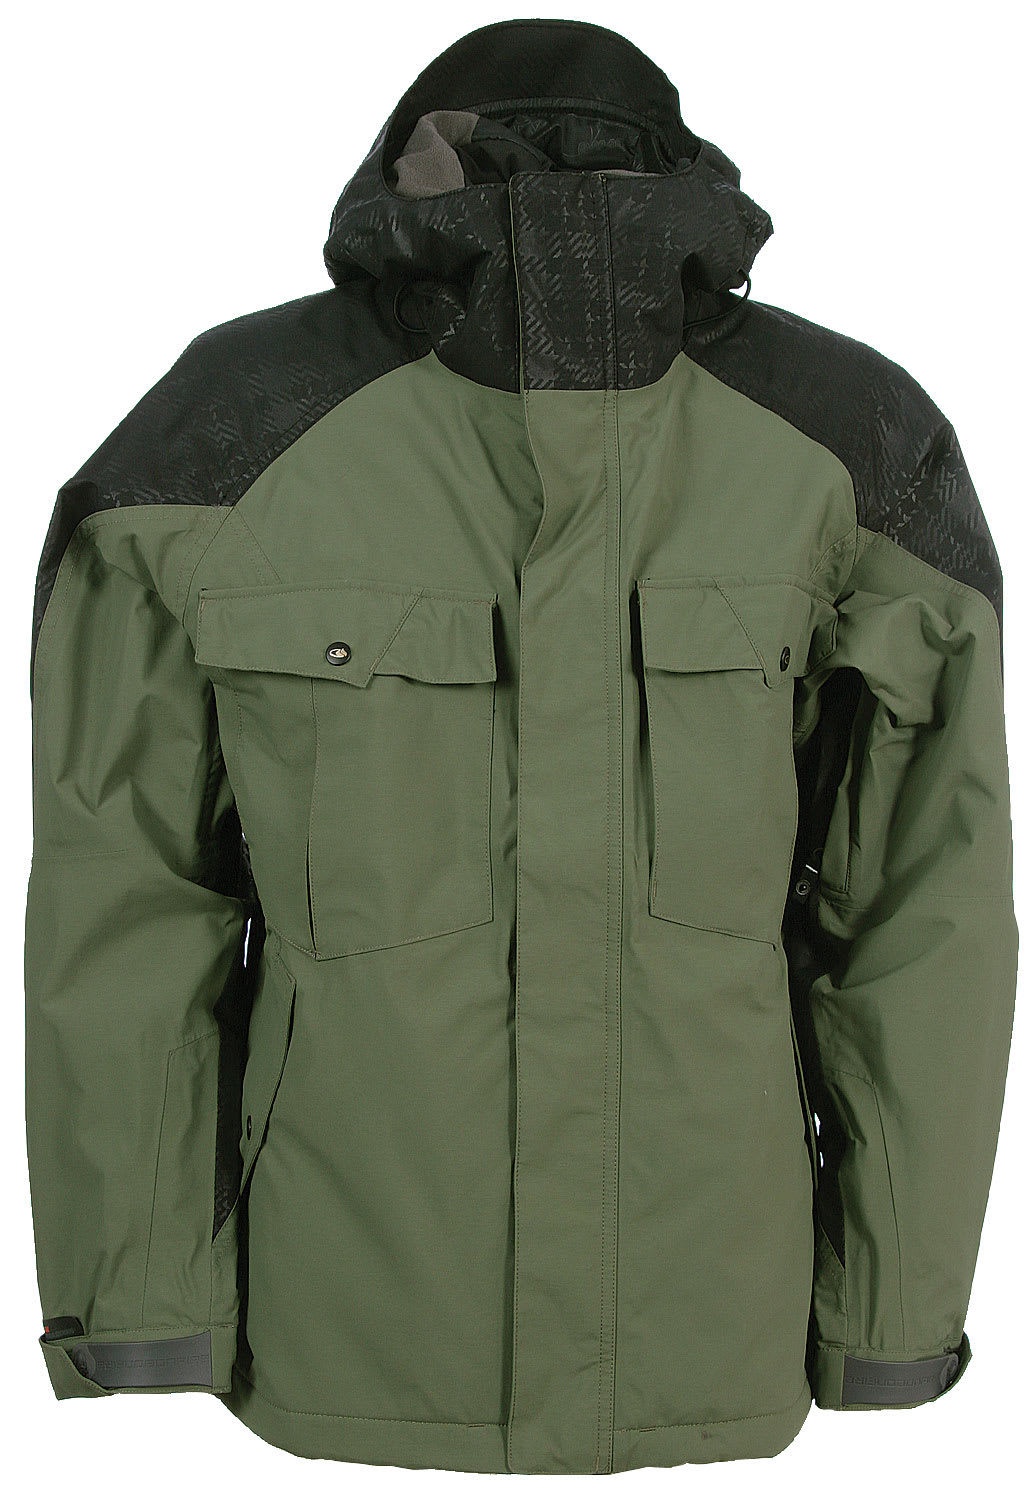 Womens Gore Tex Rain Jacket